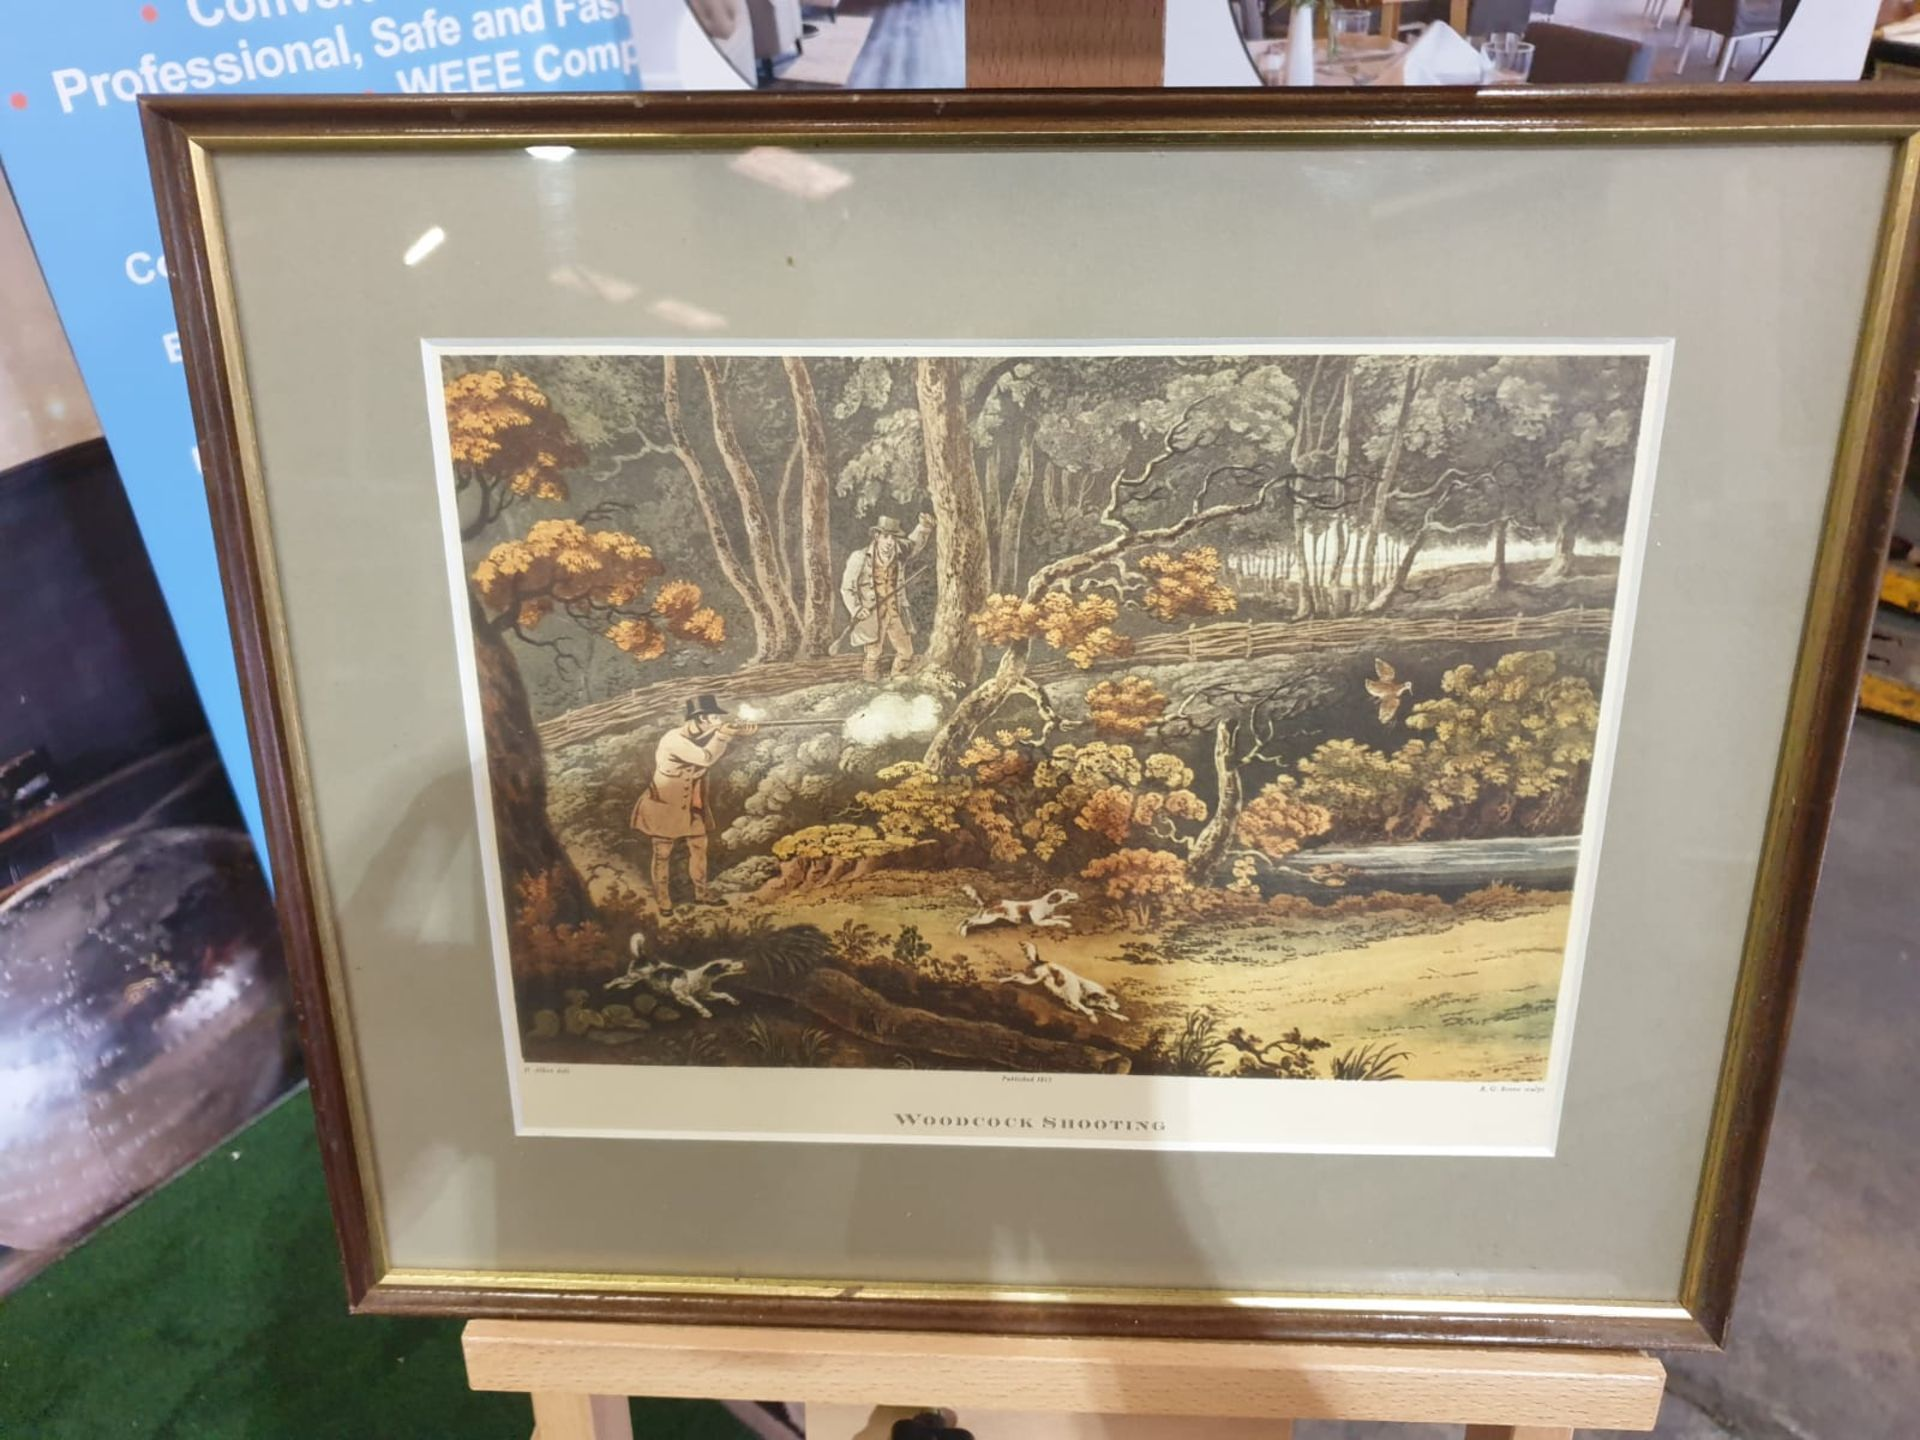 Framed coloured lithograph Woodstock Shooting R.G. Reeve, published 1806 44 x 37cm